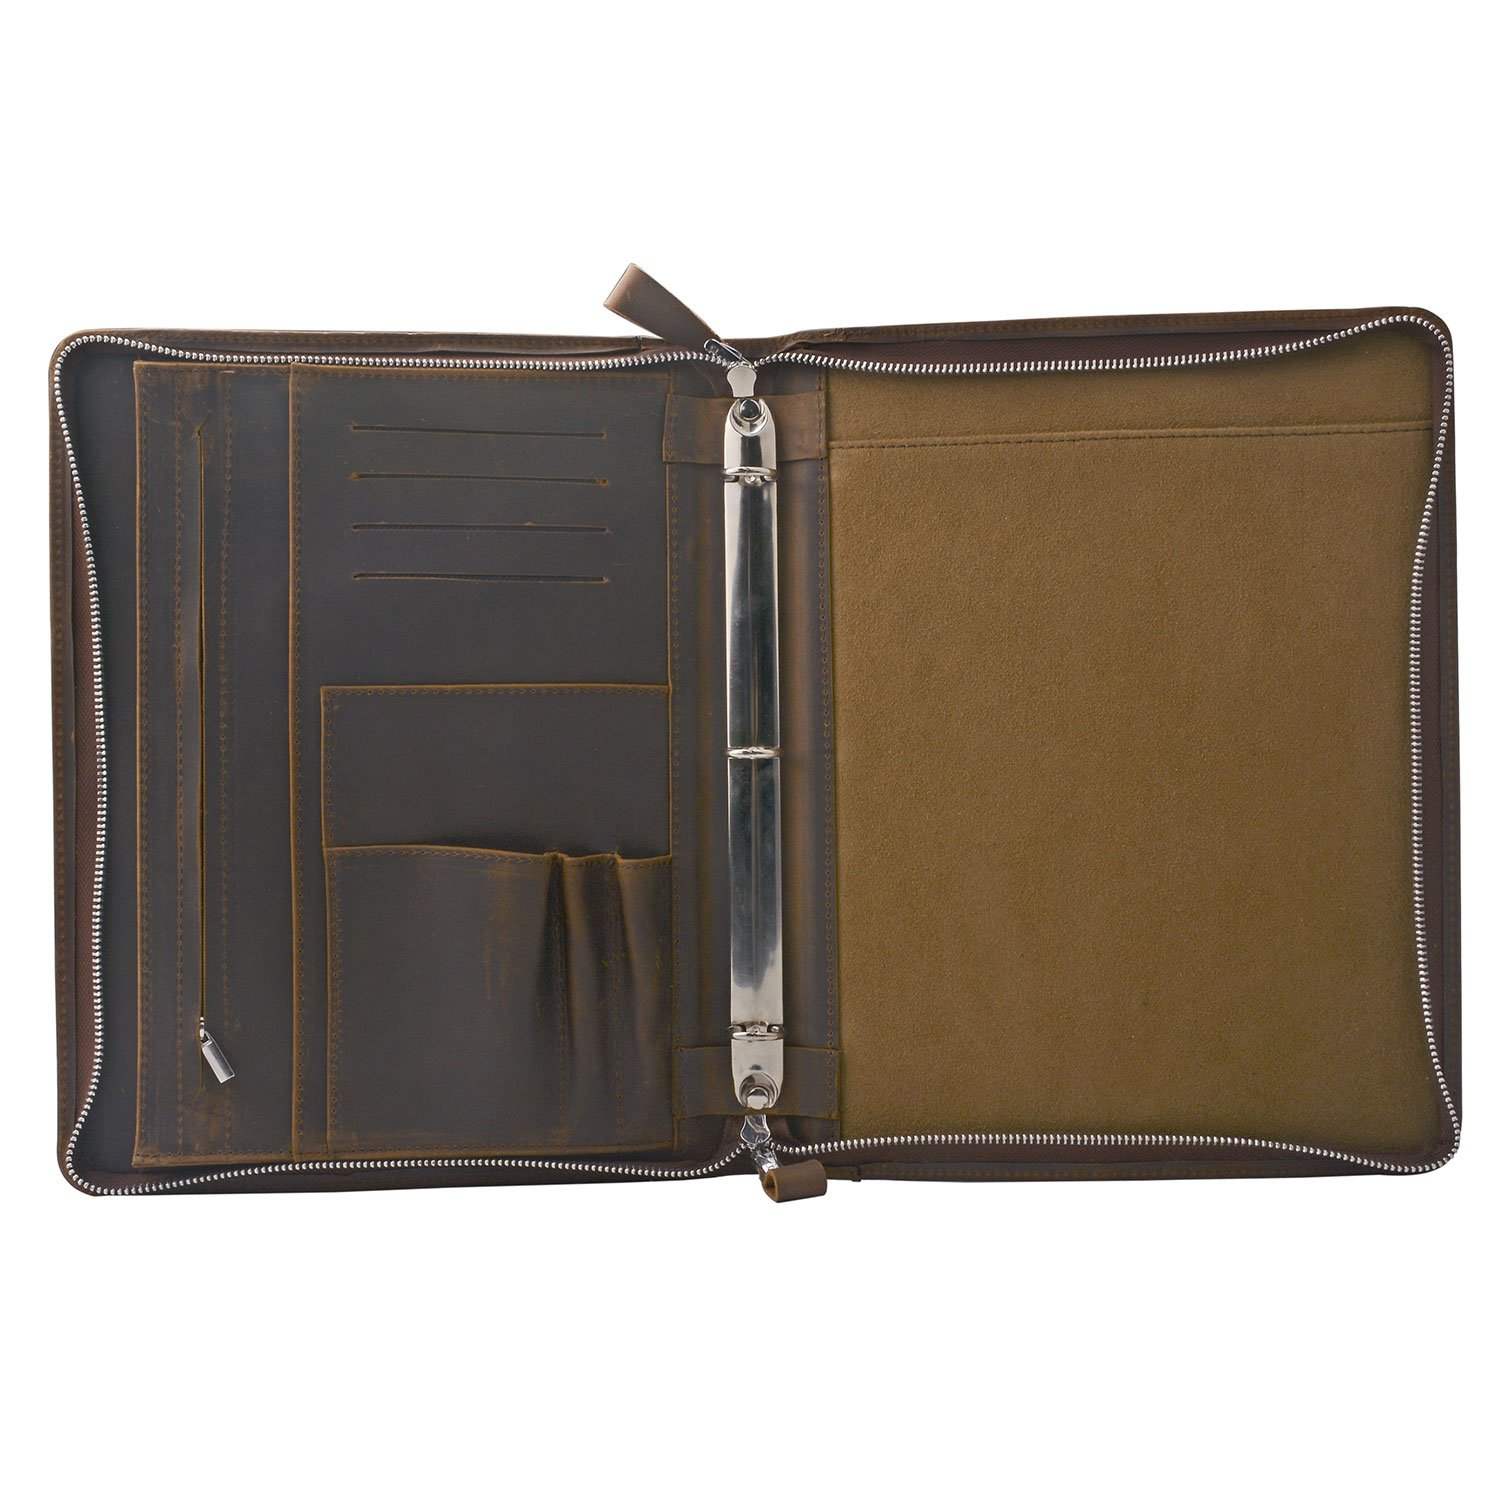 Rustic Leather Padfolio with 3-Ring Binder for Letter A4 Paper, 11-inch MacBook Air, Tan by iCarryAlls (Image #3)